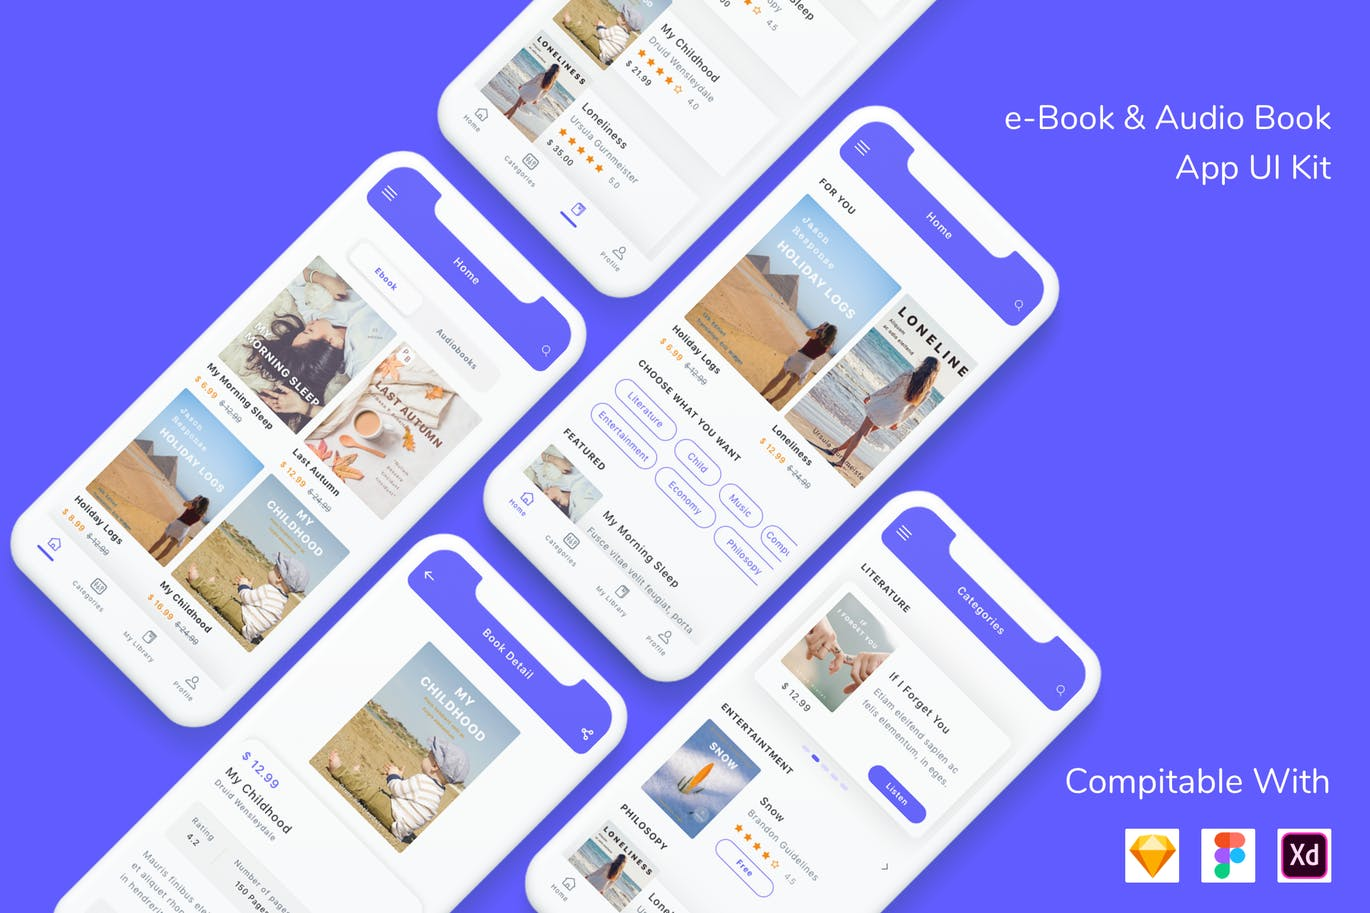 e-Book & Audio Book App UI Kit